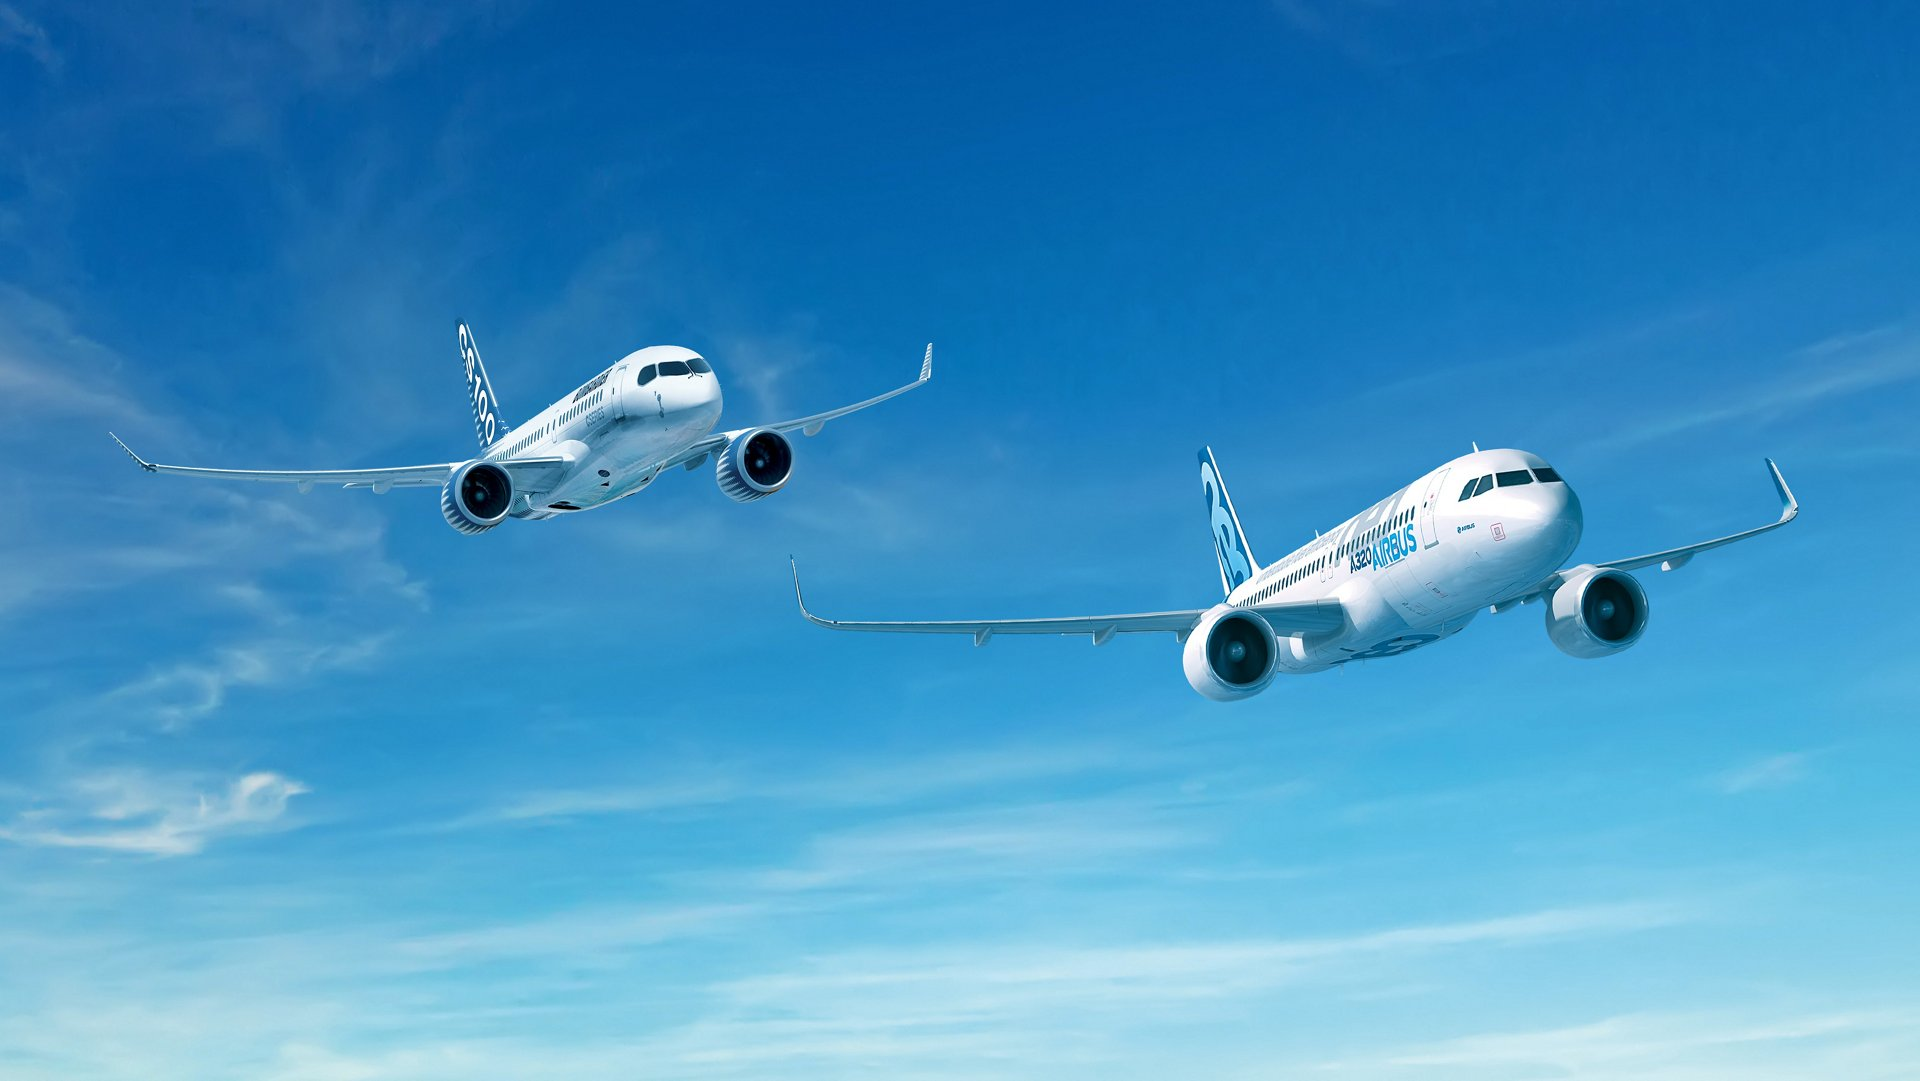 The agreement – signed in October 2017 – brings together Airbus' global reach and scale with Bombardier's newest, state-of-the-art jet aircraft family